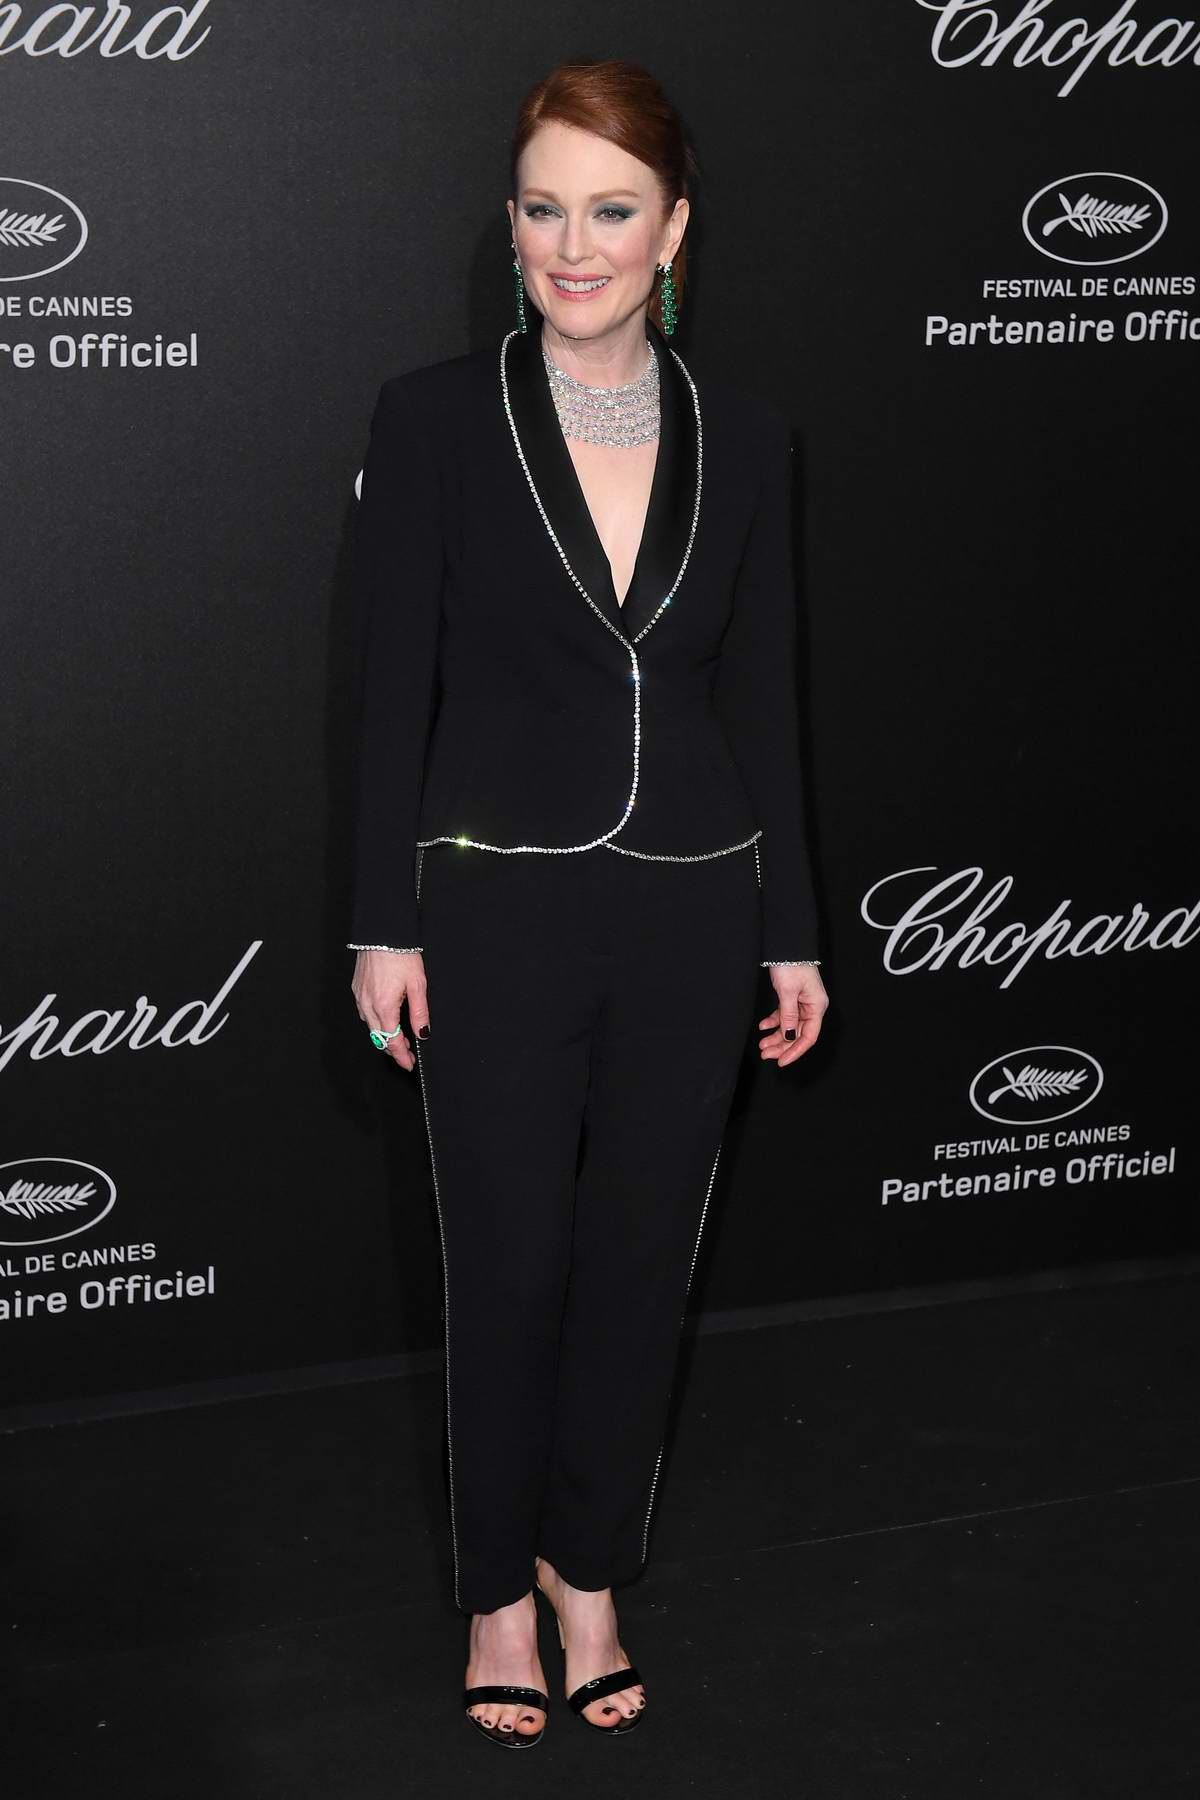 Julianne Moore wears Sonia Rykiel Pre-fall 2018 suit to as she attends Secret Chopard party during the 71st Cannes Film Festival in Cannes, France